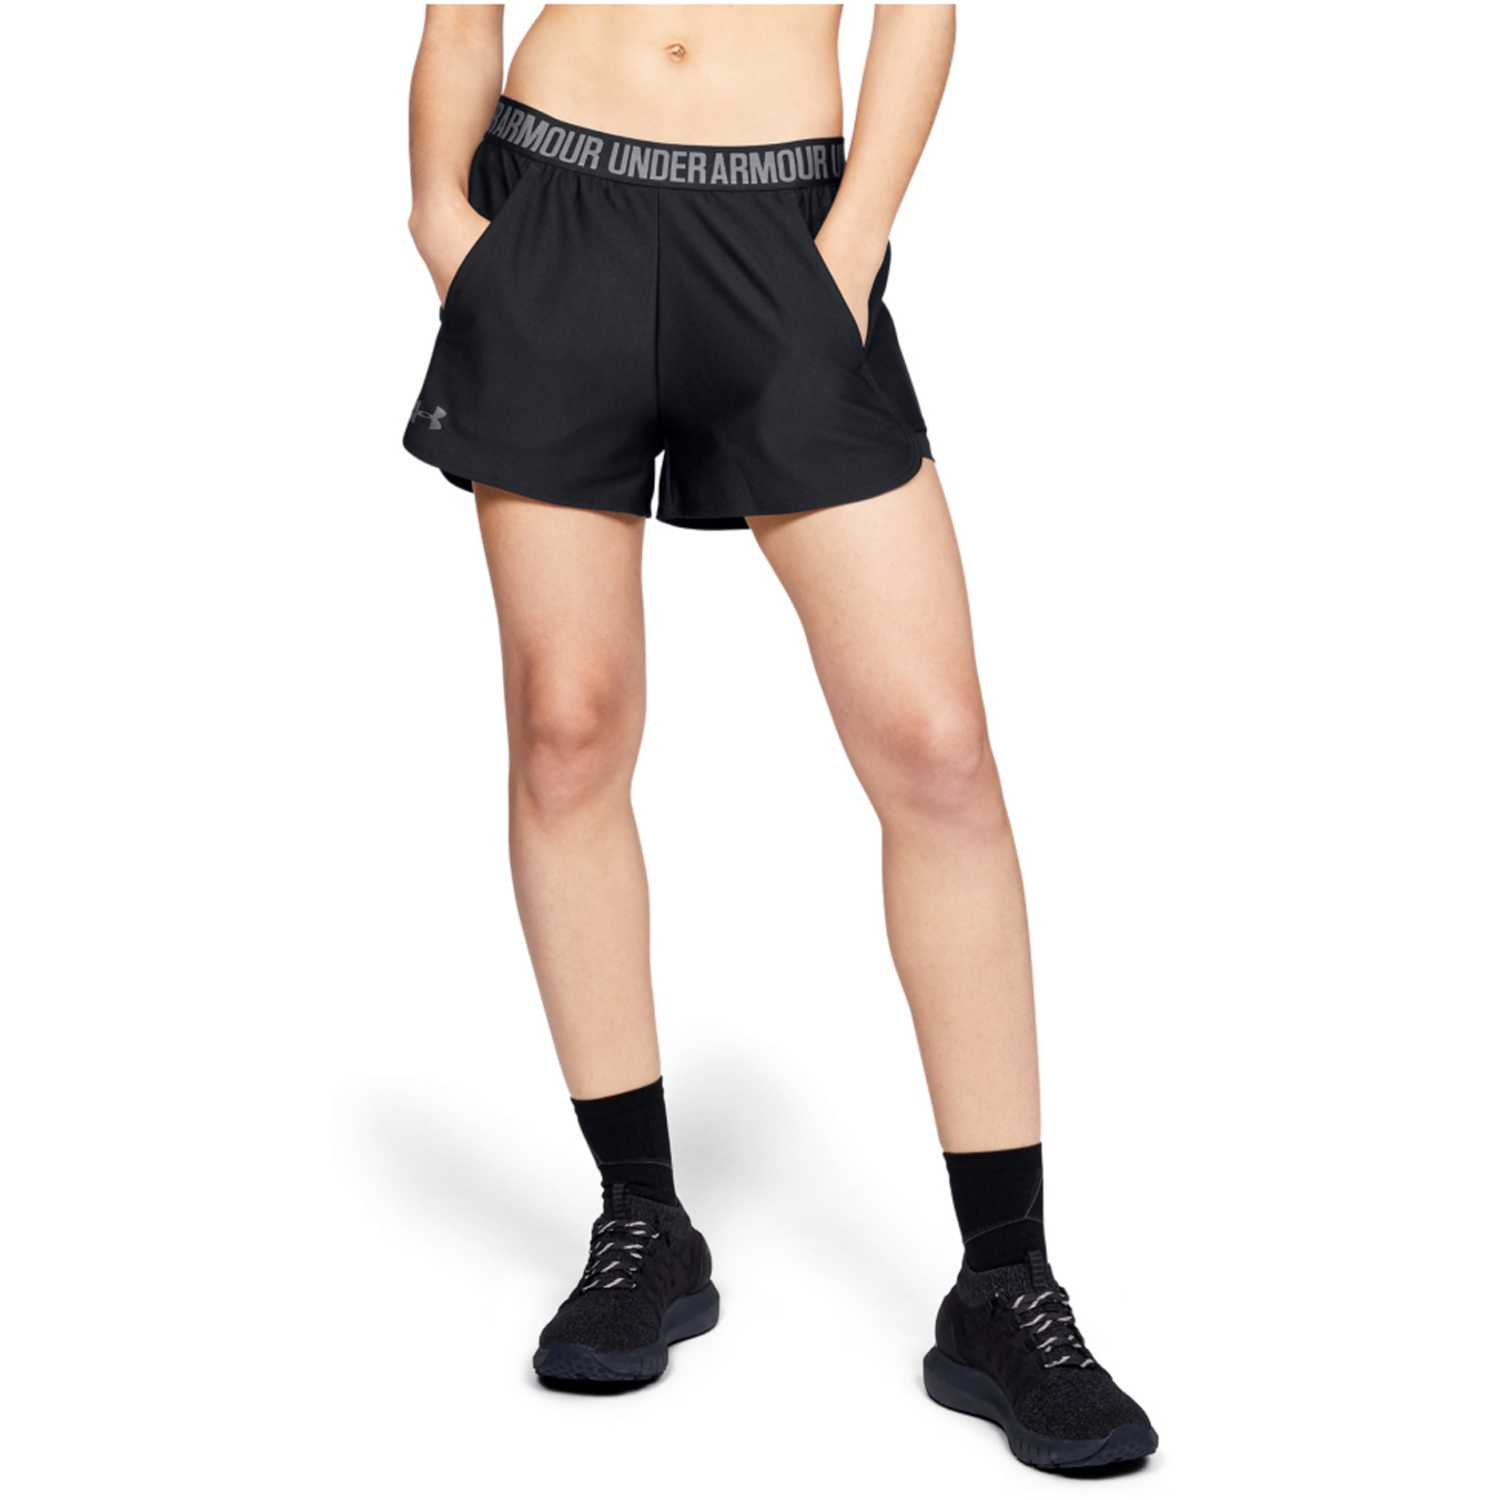 Under Armour play up short 2-in-1-blk Navy Shorts Deportivos